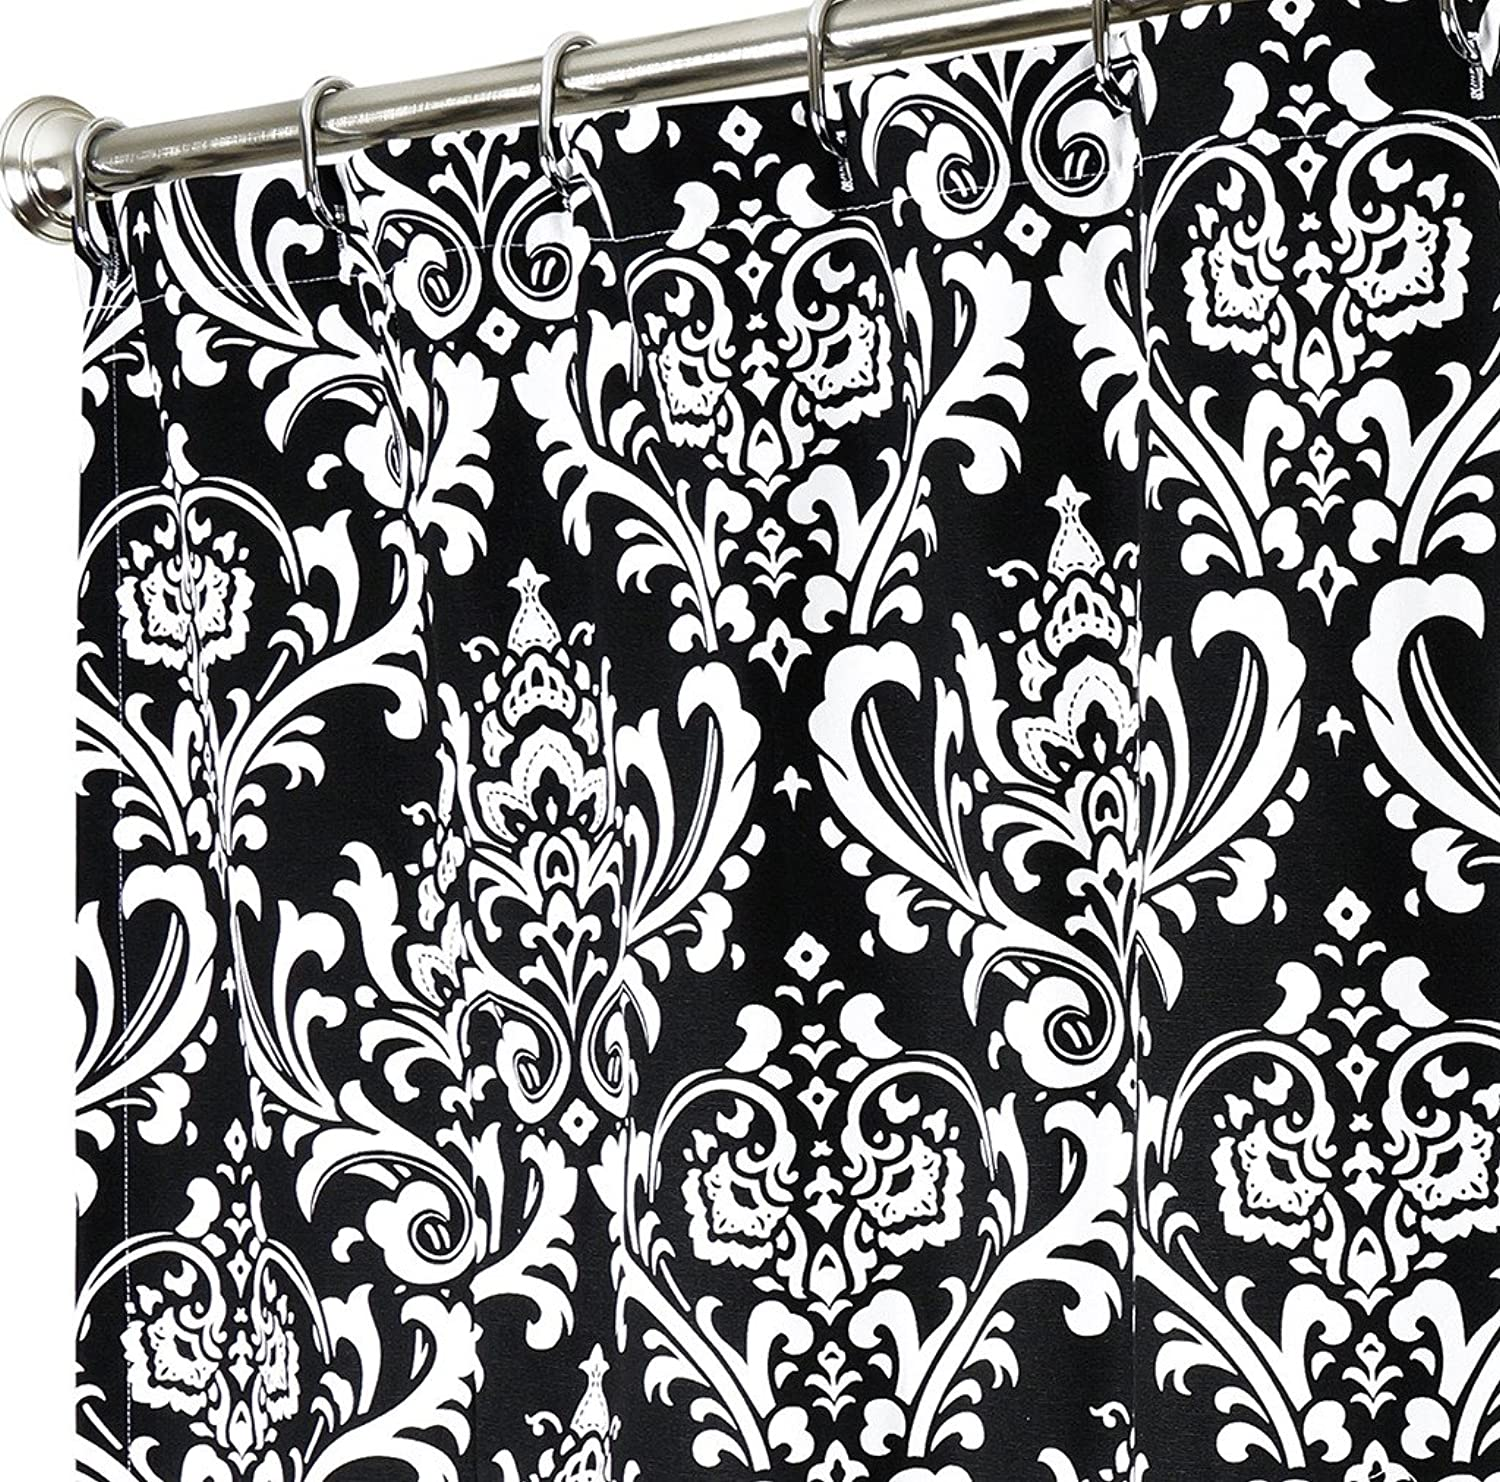 Black and White Shower Curtain Damask Fabric Shower Curtains for Bathroom Decor 100% Cotton Cloth 72 Inch x 84 Inch